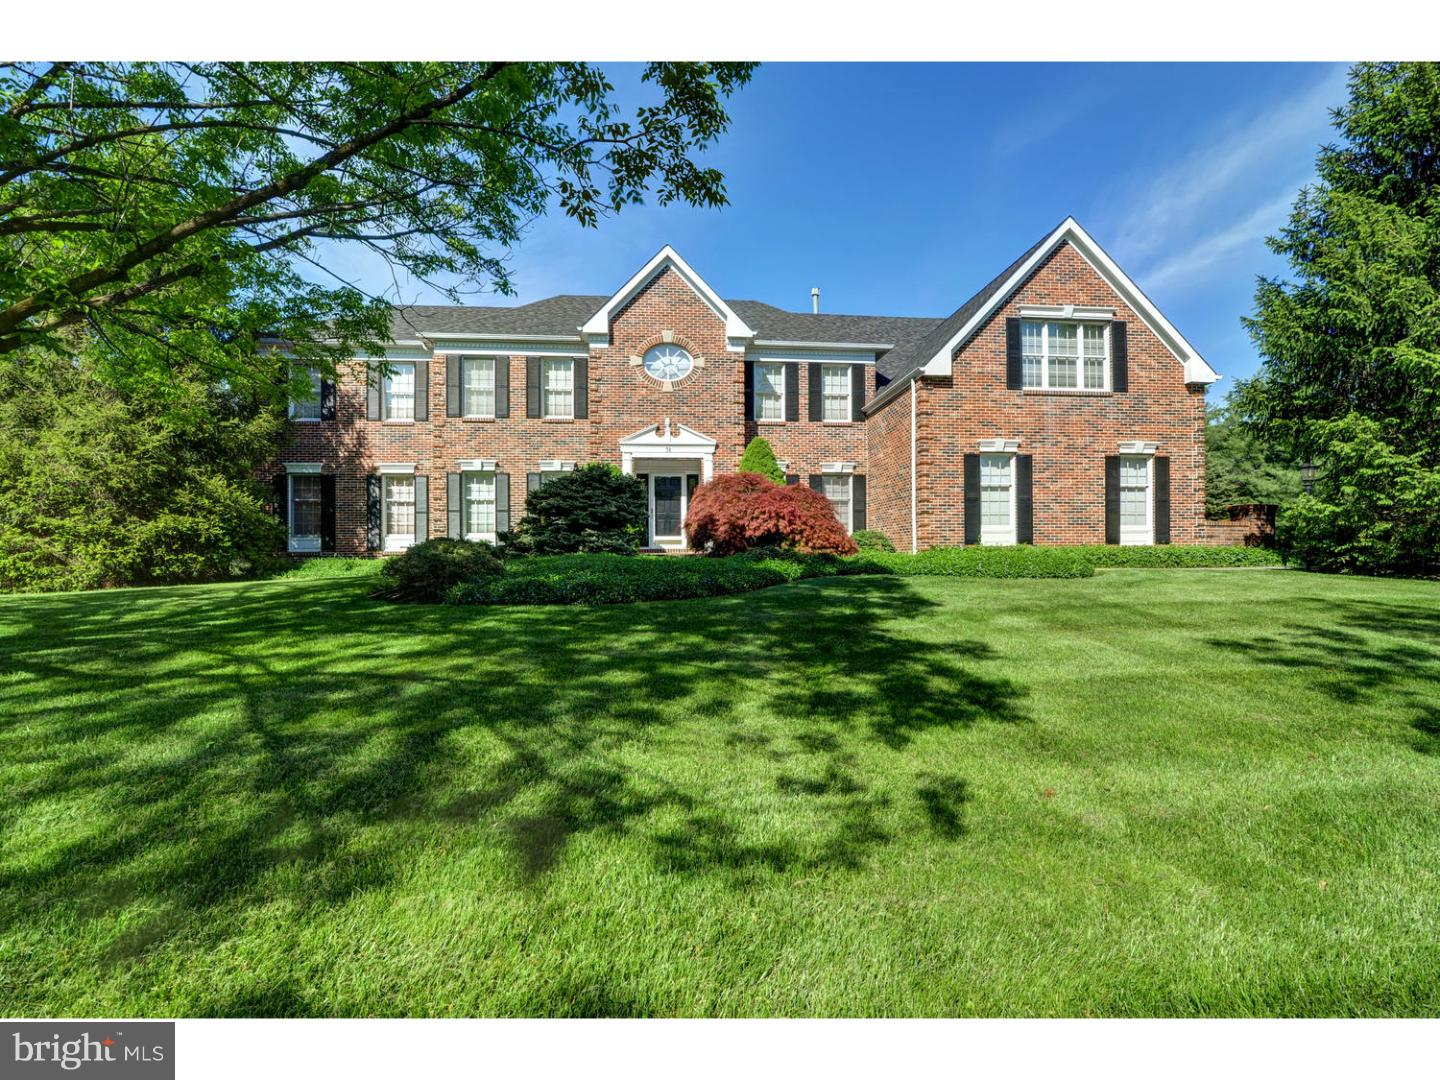 38 MILLBROOK DRIVE, PRINCETON JUNCTION, NJ 08550